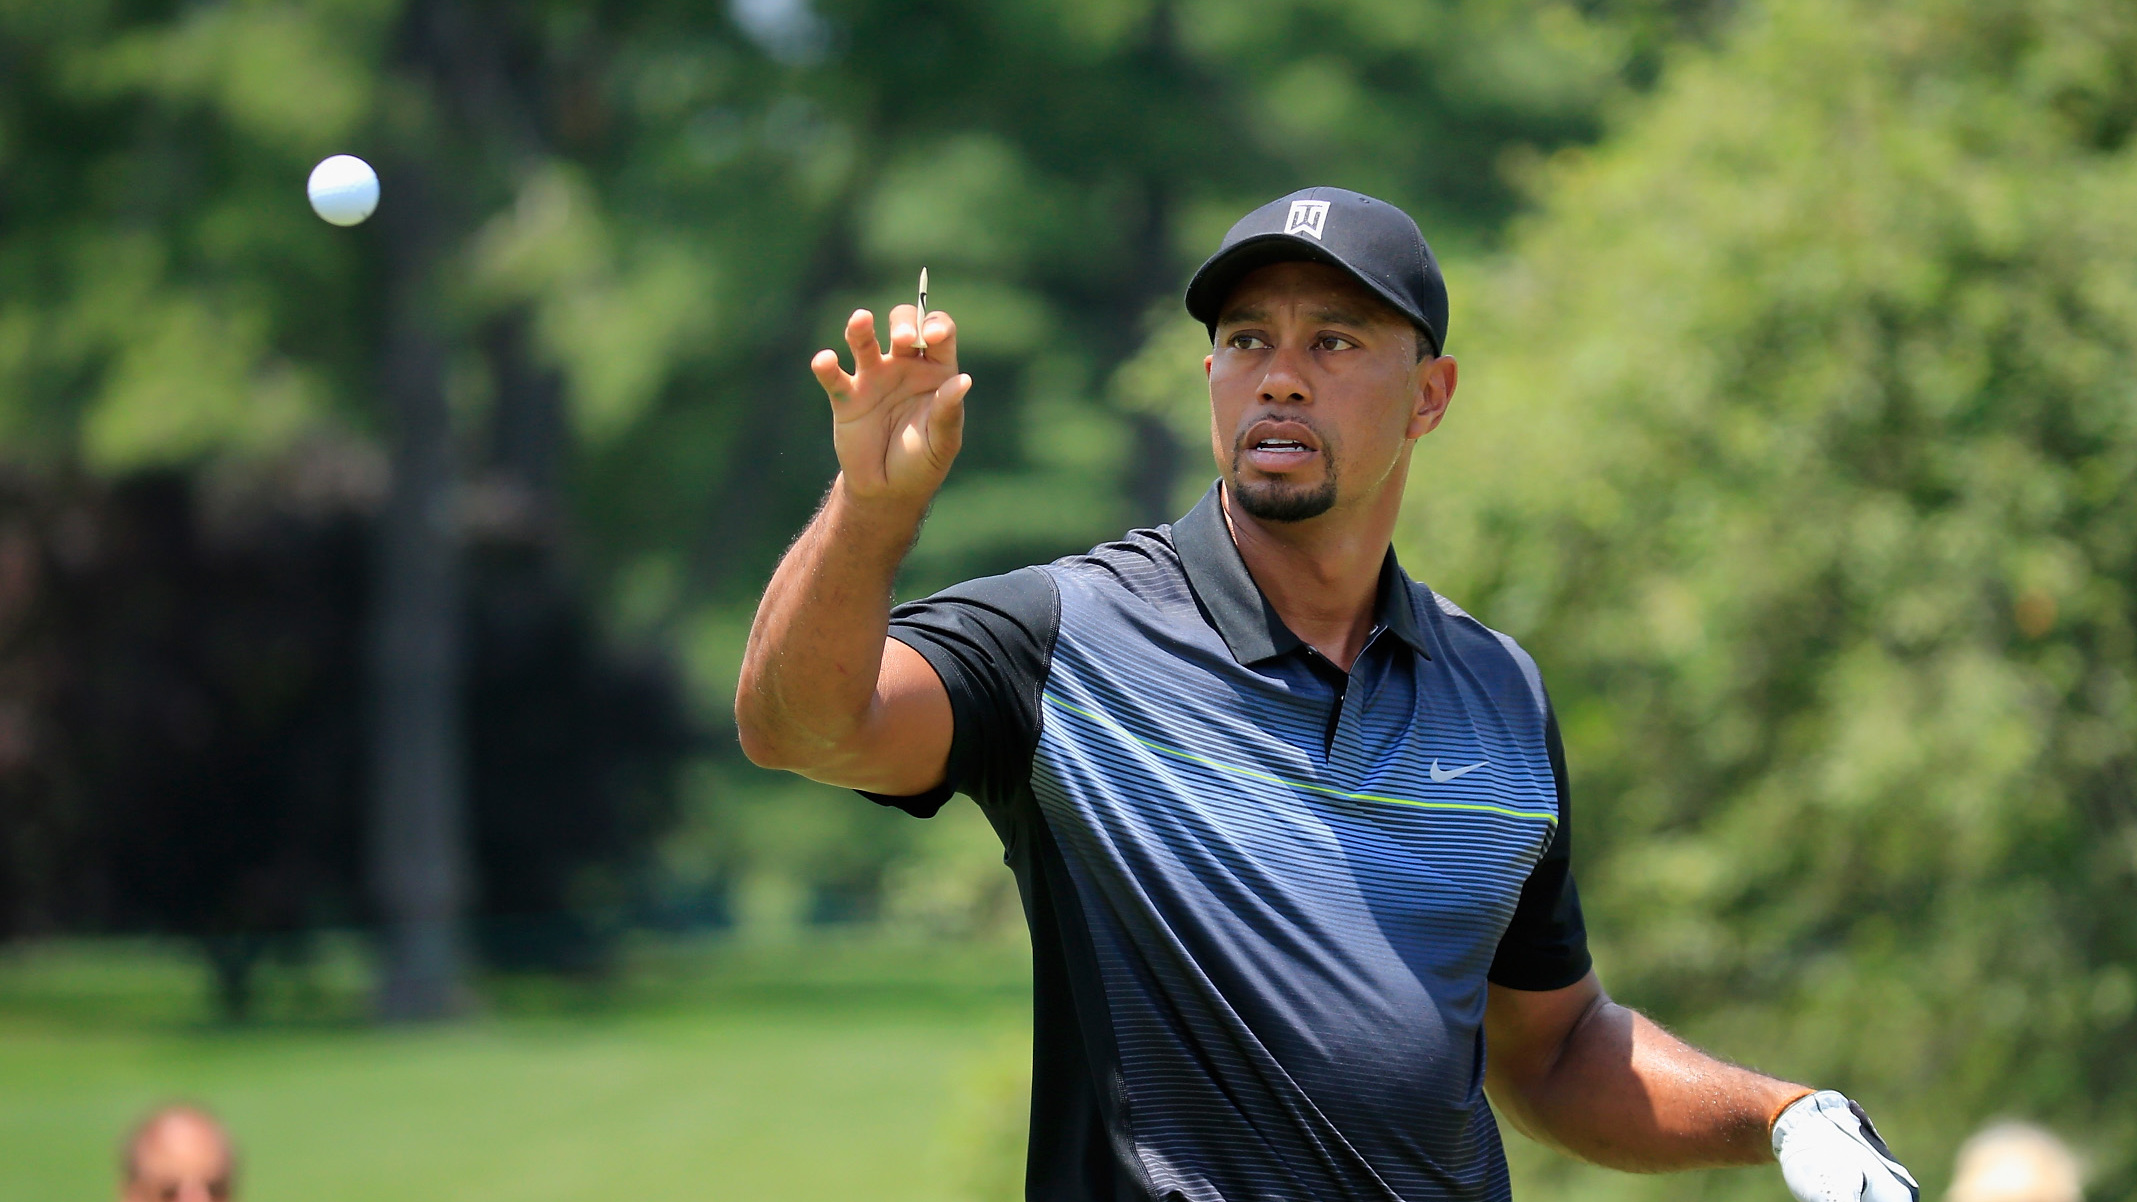 Report: Tiger Woods to play Bridgestone golf balls at the Hero World Challenge.